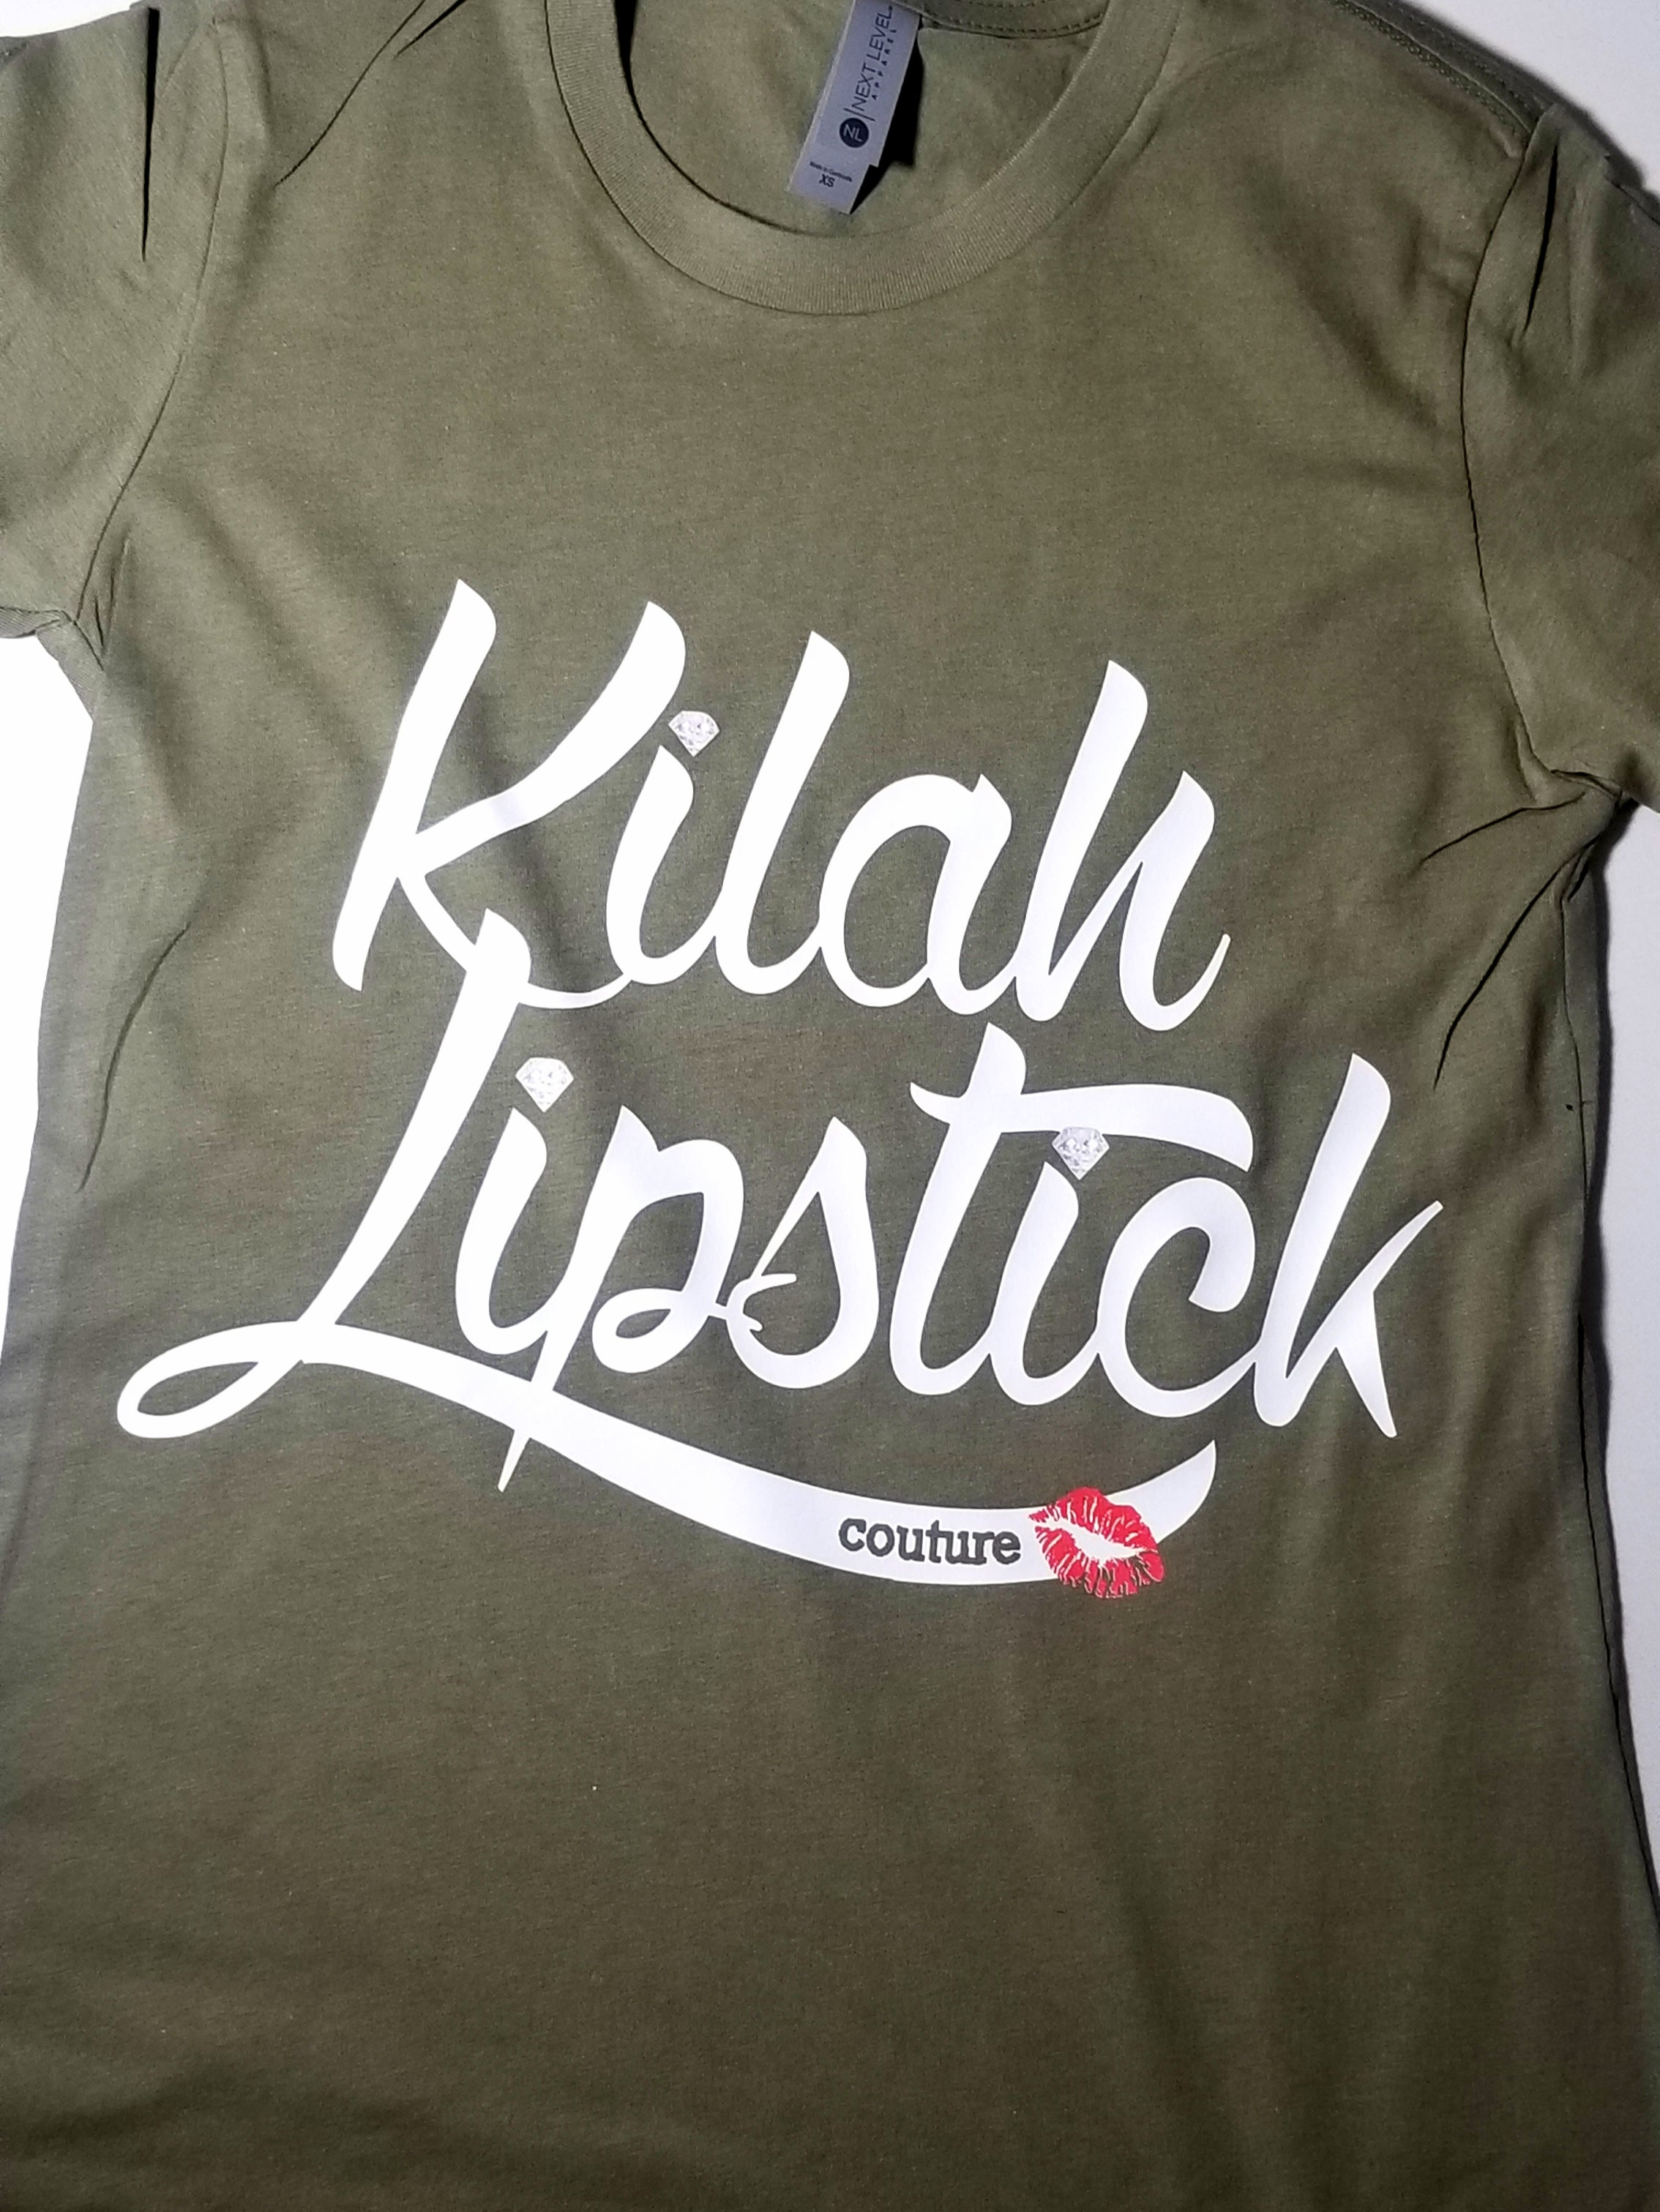 Kilah Colors Signature Tees